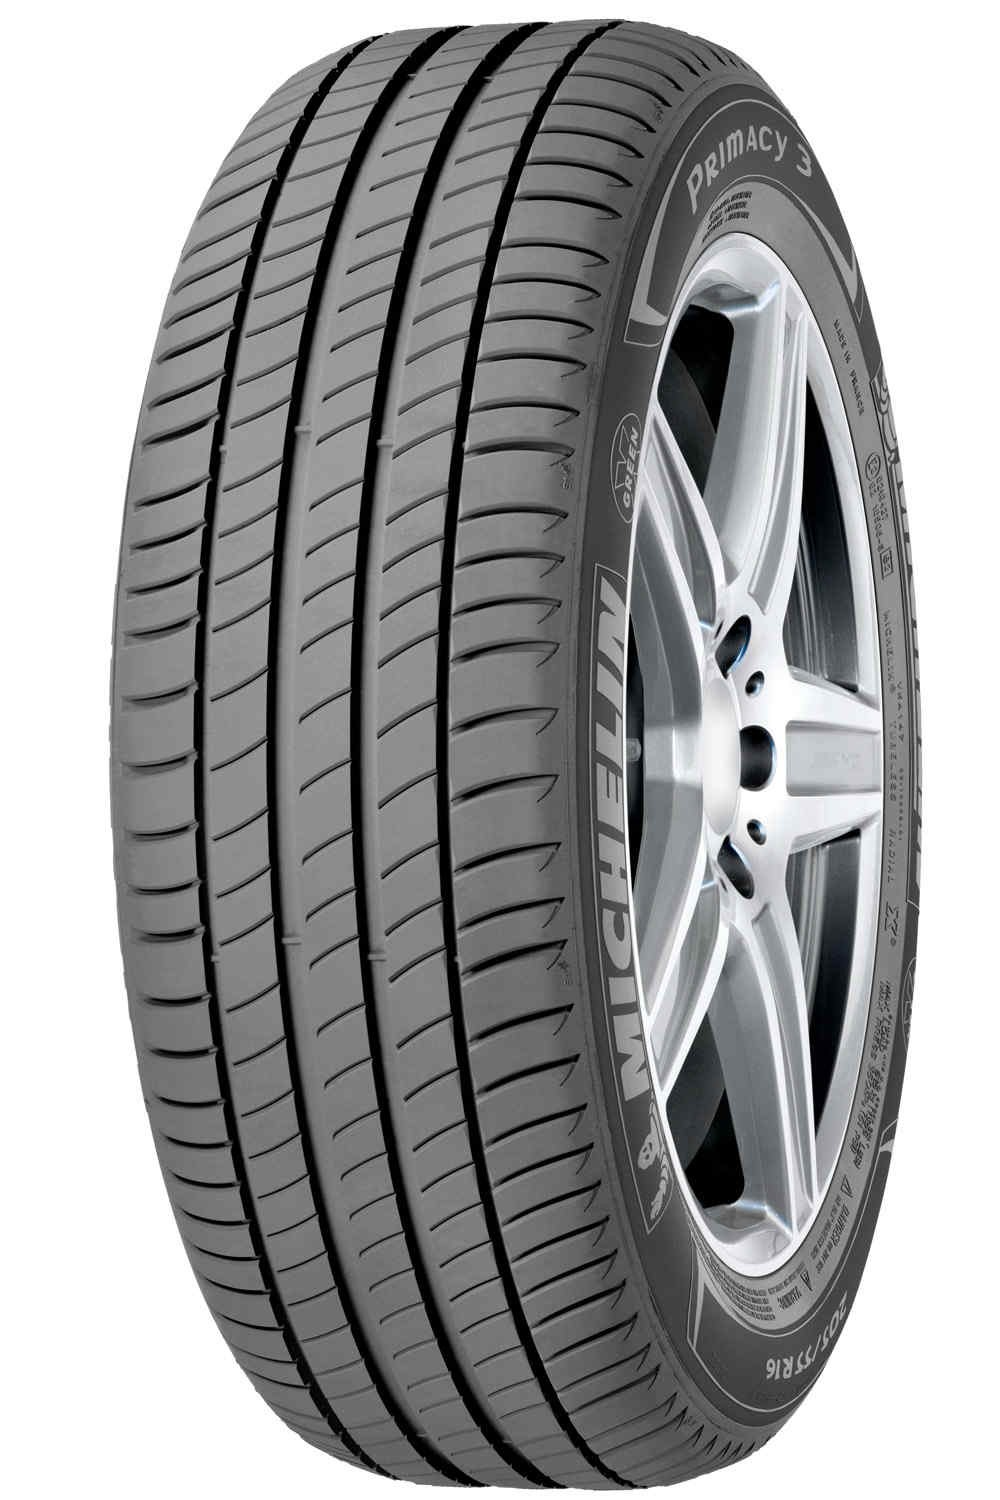 MICHELIN 225/50R17 PRIMACY 3 94Y